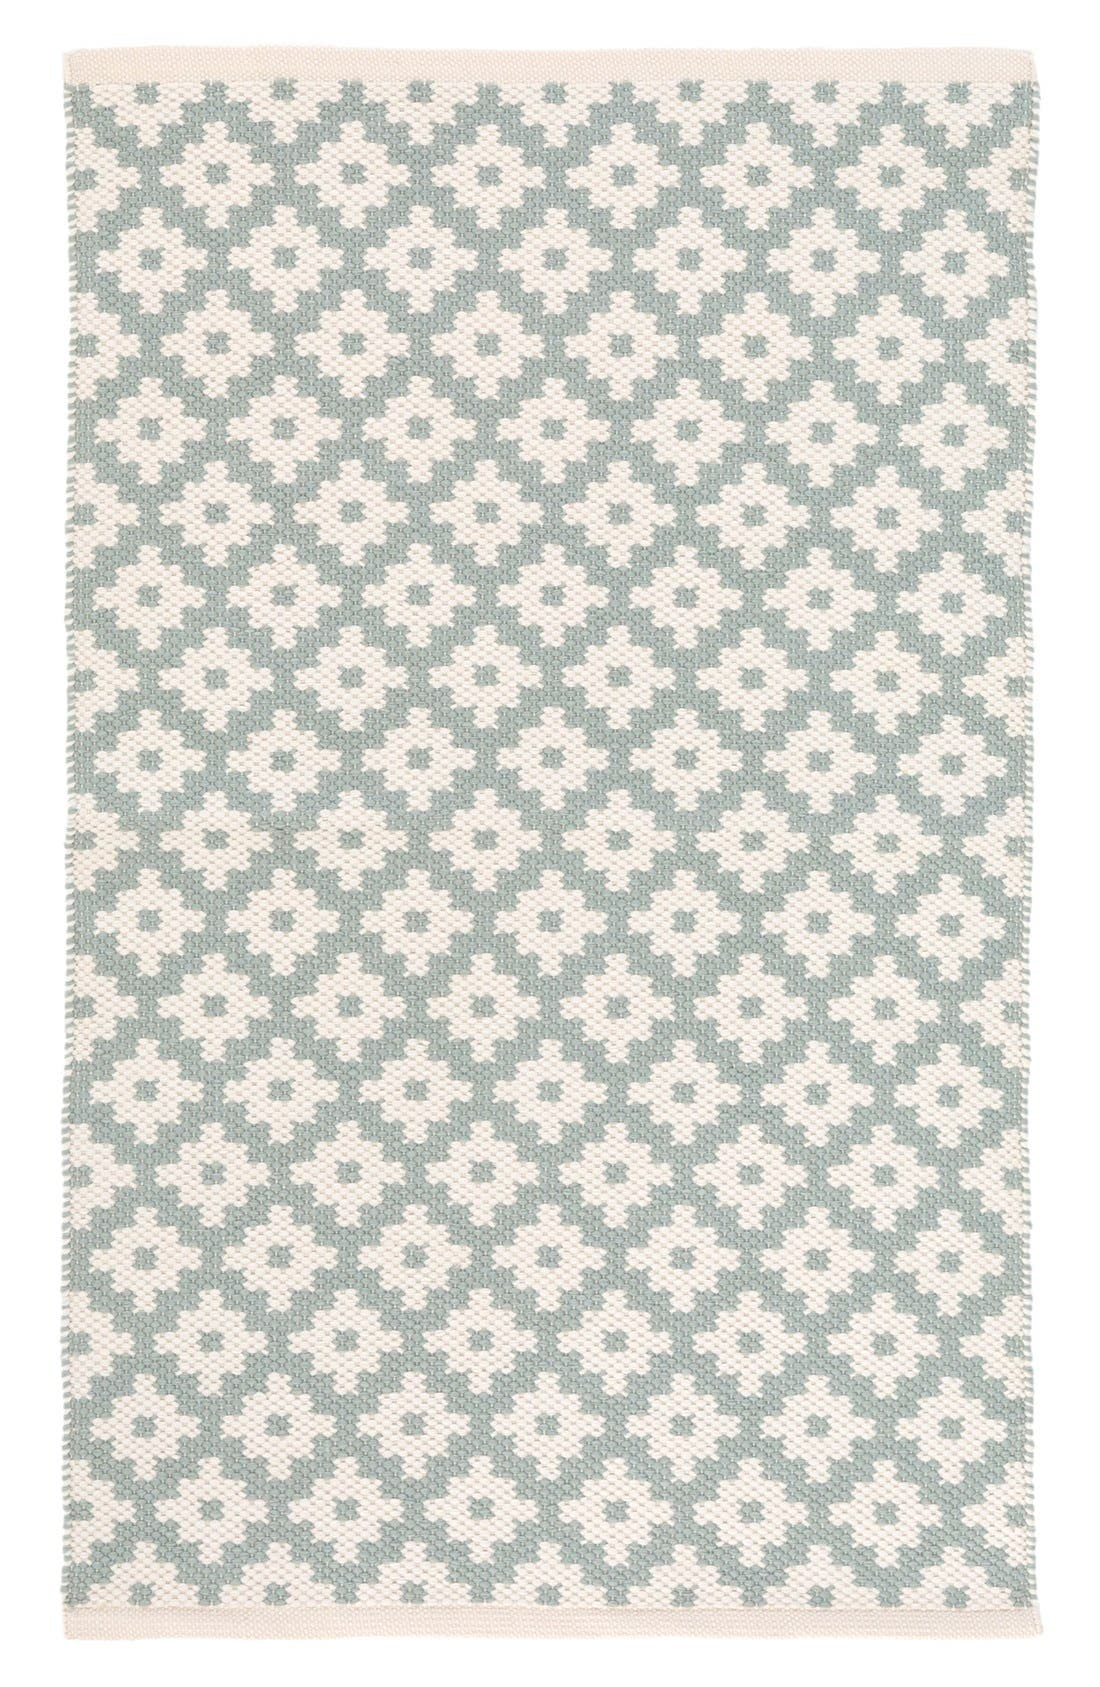 'Samode' Indoor/Outdoor Rug,                             Main thumbnail 1, color,                             Light Blue/ Ivory